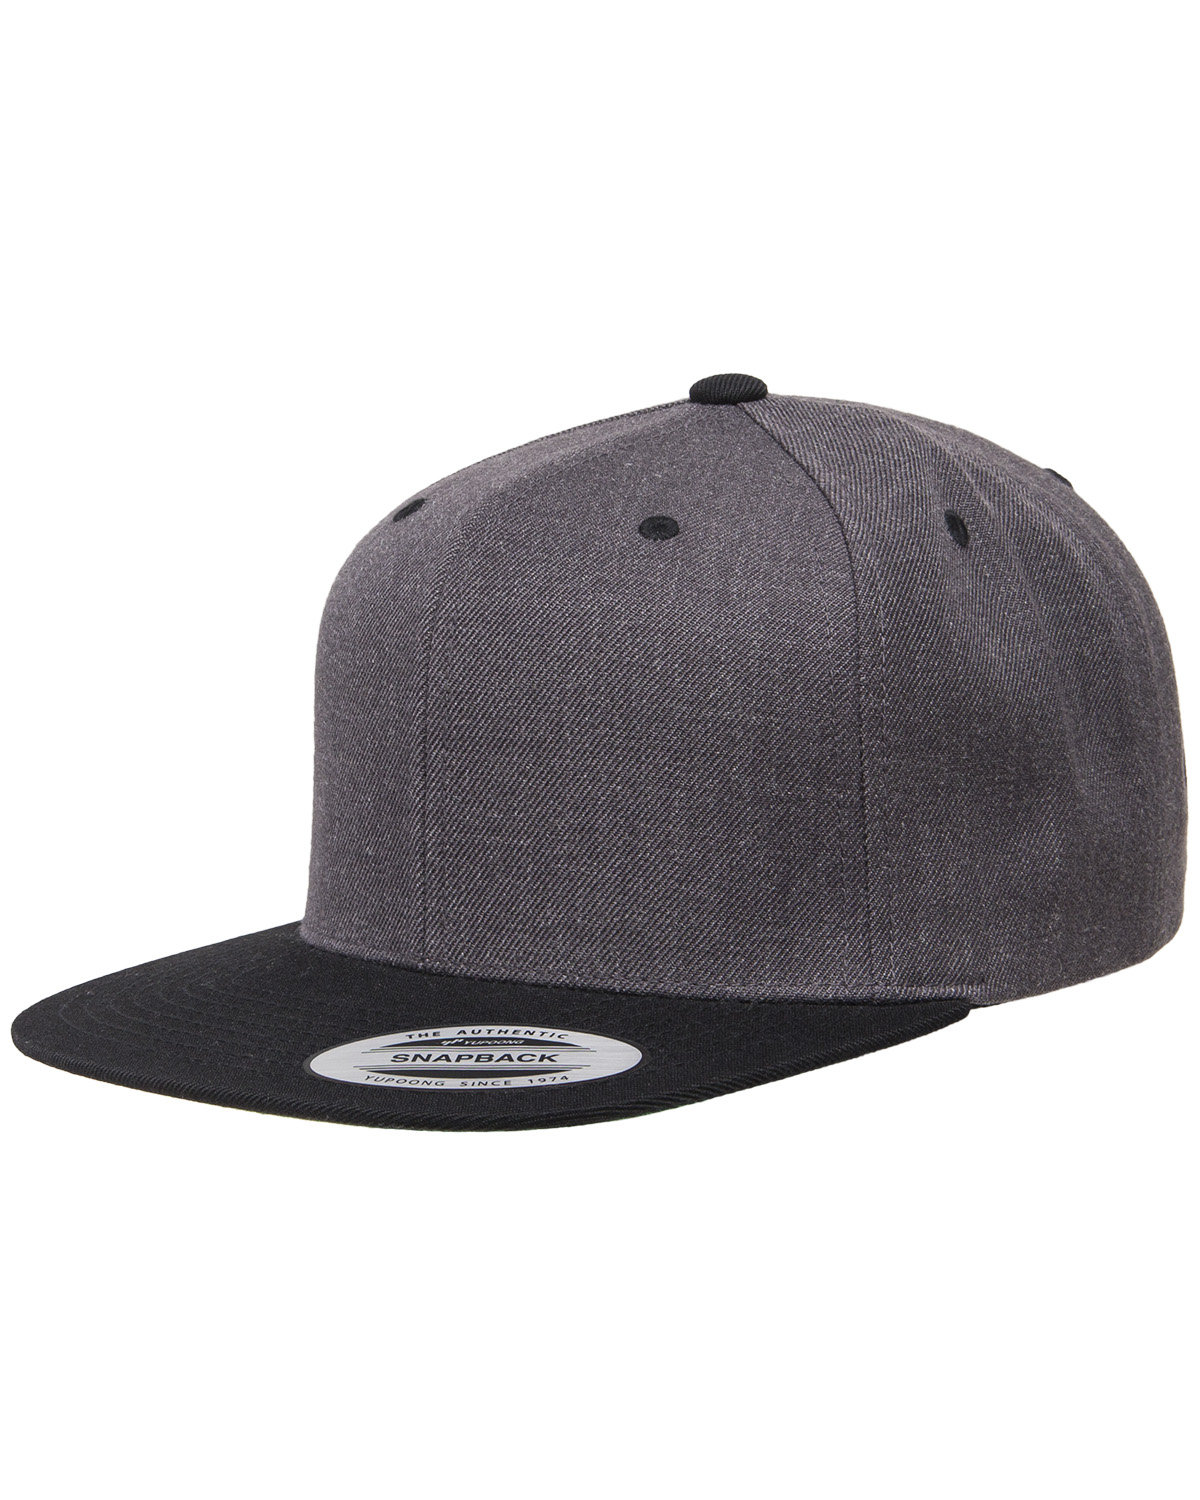 44c824dcc2c 6089MT. Yupoong Adult 6-Panel Structured Flat Visor Classic Two-Tone  Snapback